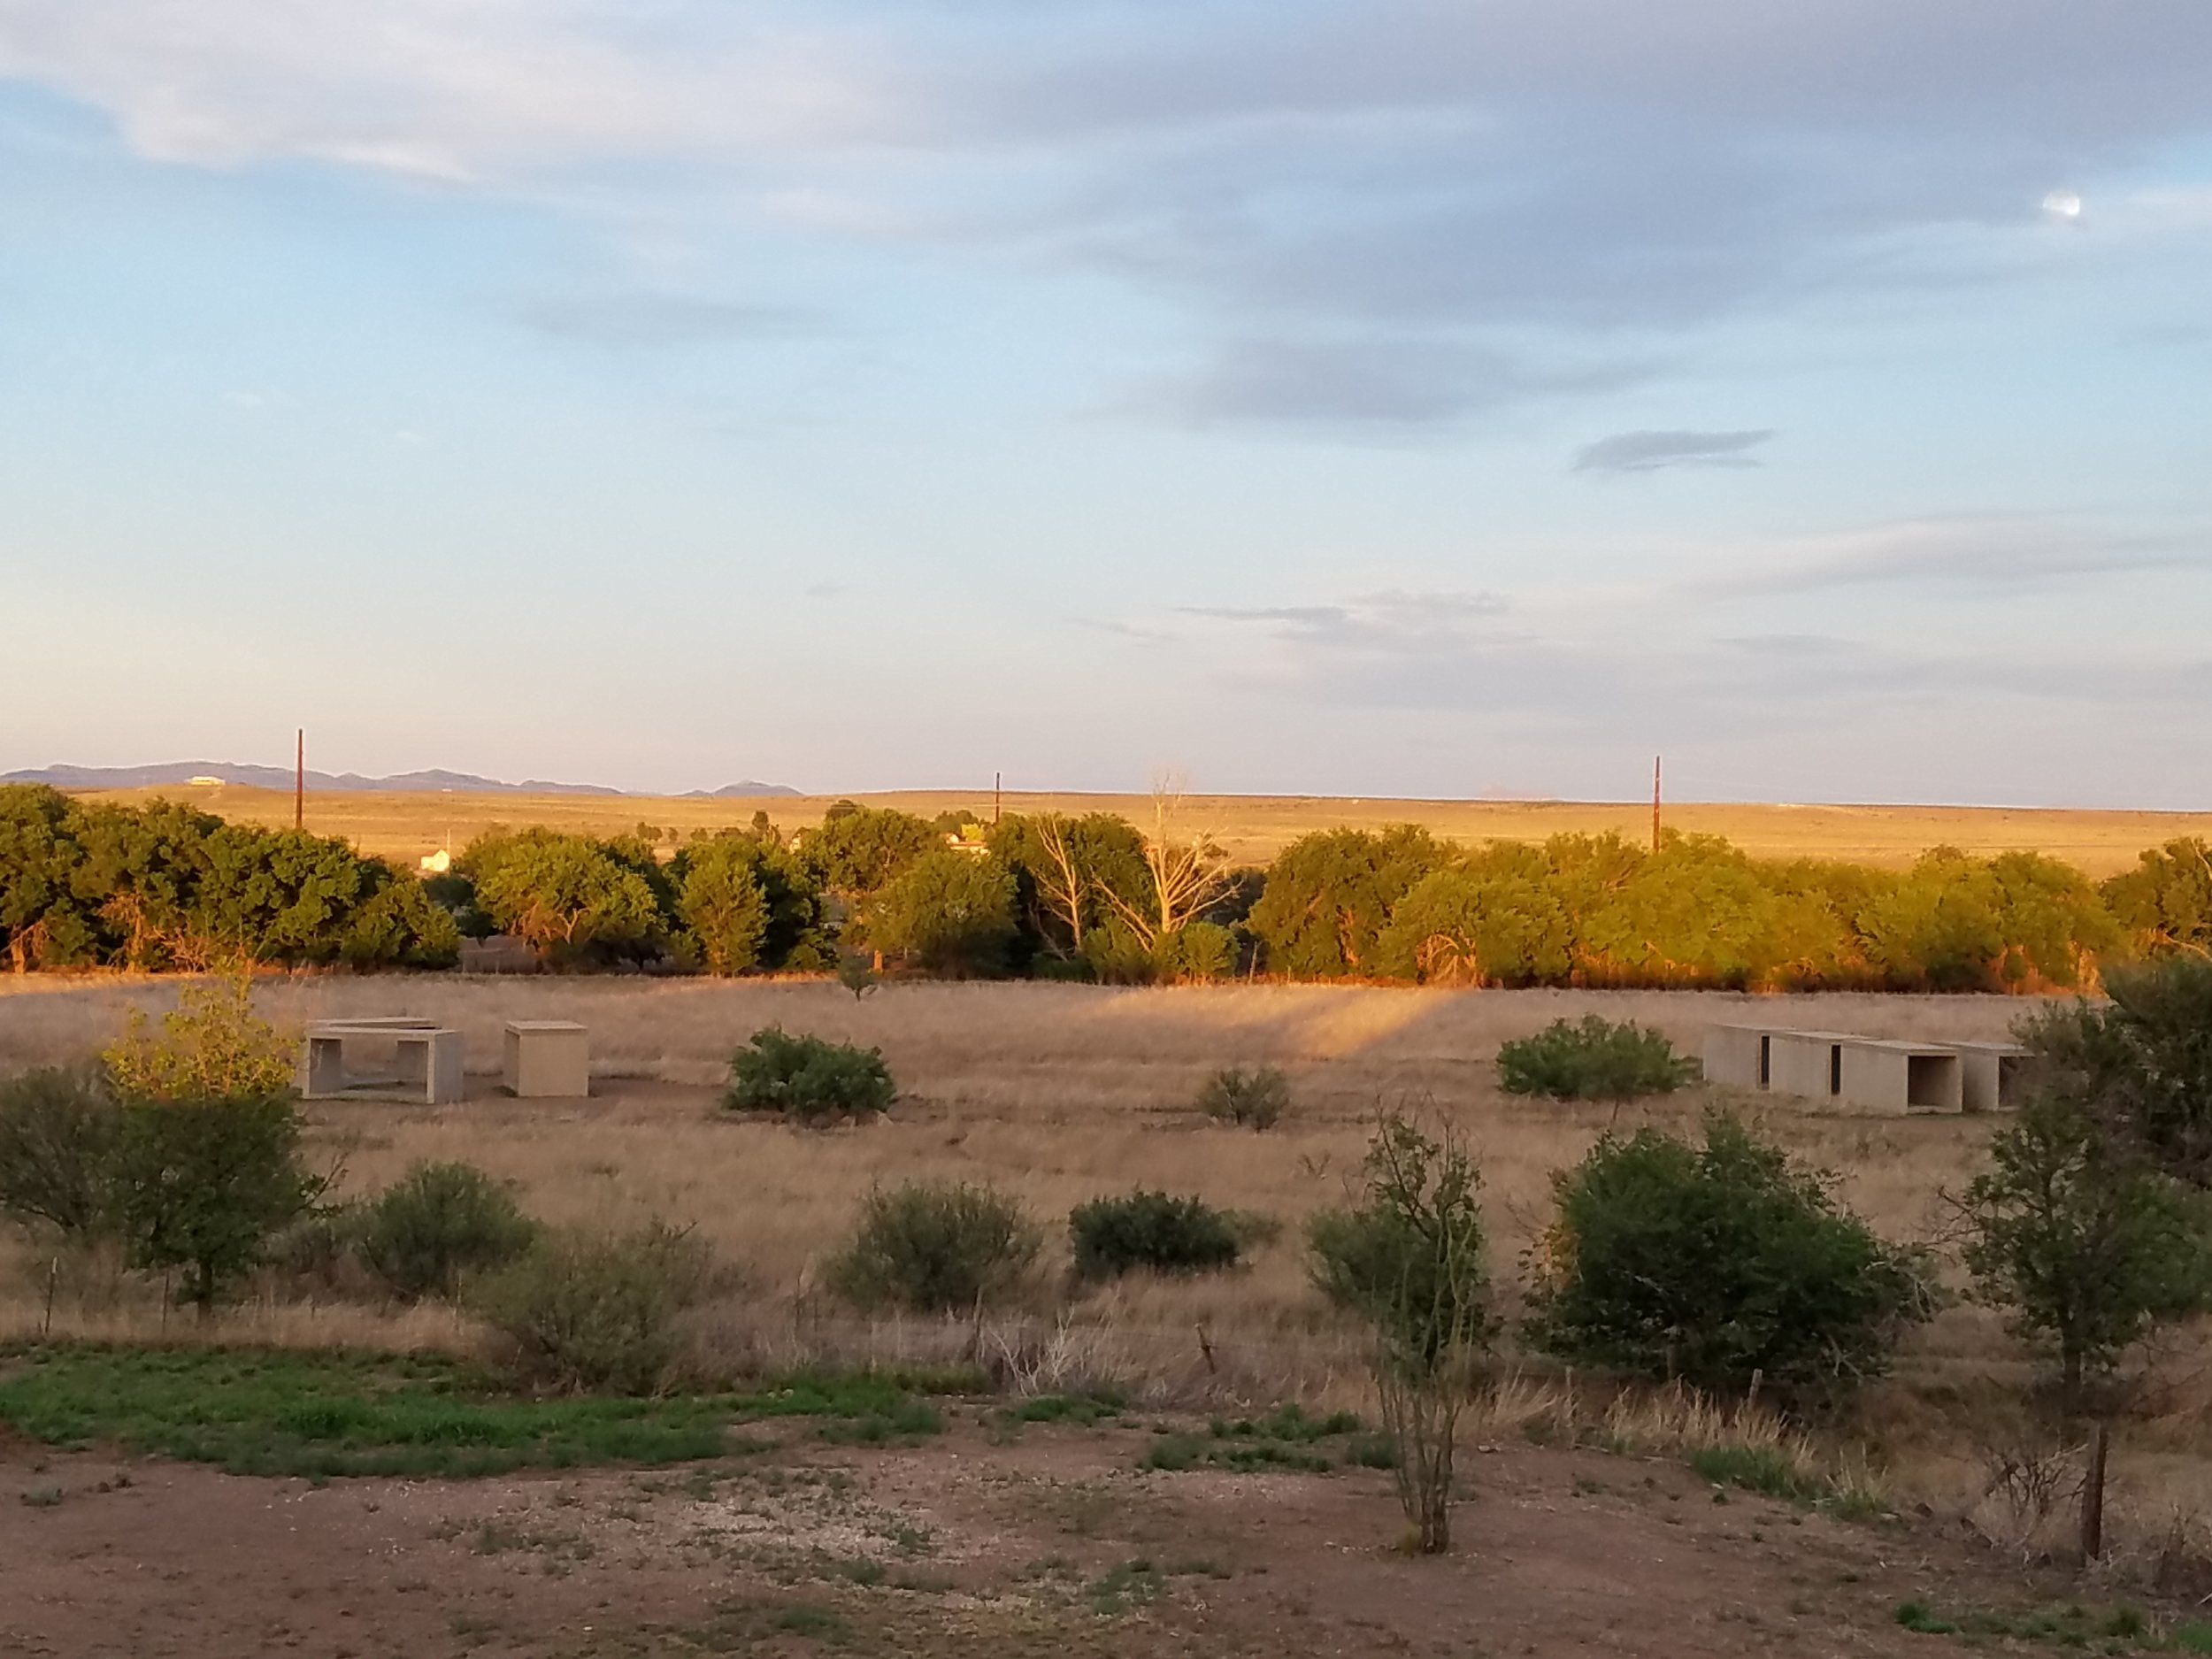 Golden hour. Taken at the Marfa, Texas home of musician Fran Christina and his artist wife Julie Speed. They live next to the Chinati Foundation, which was established by the late artist Donald Judd.